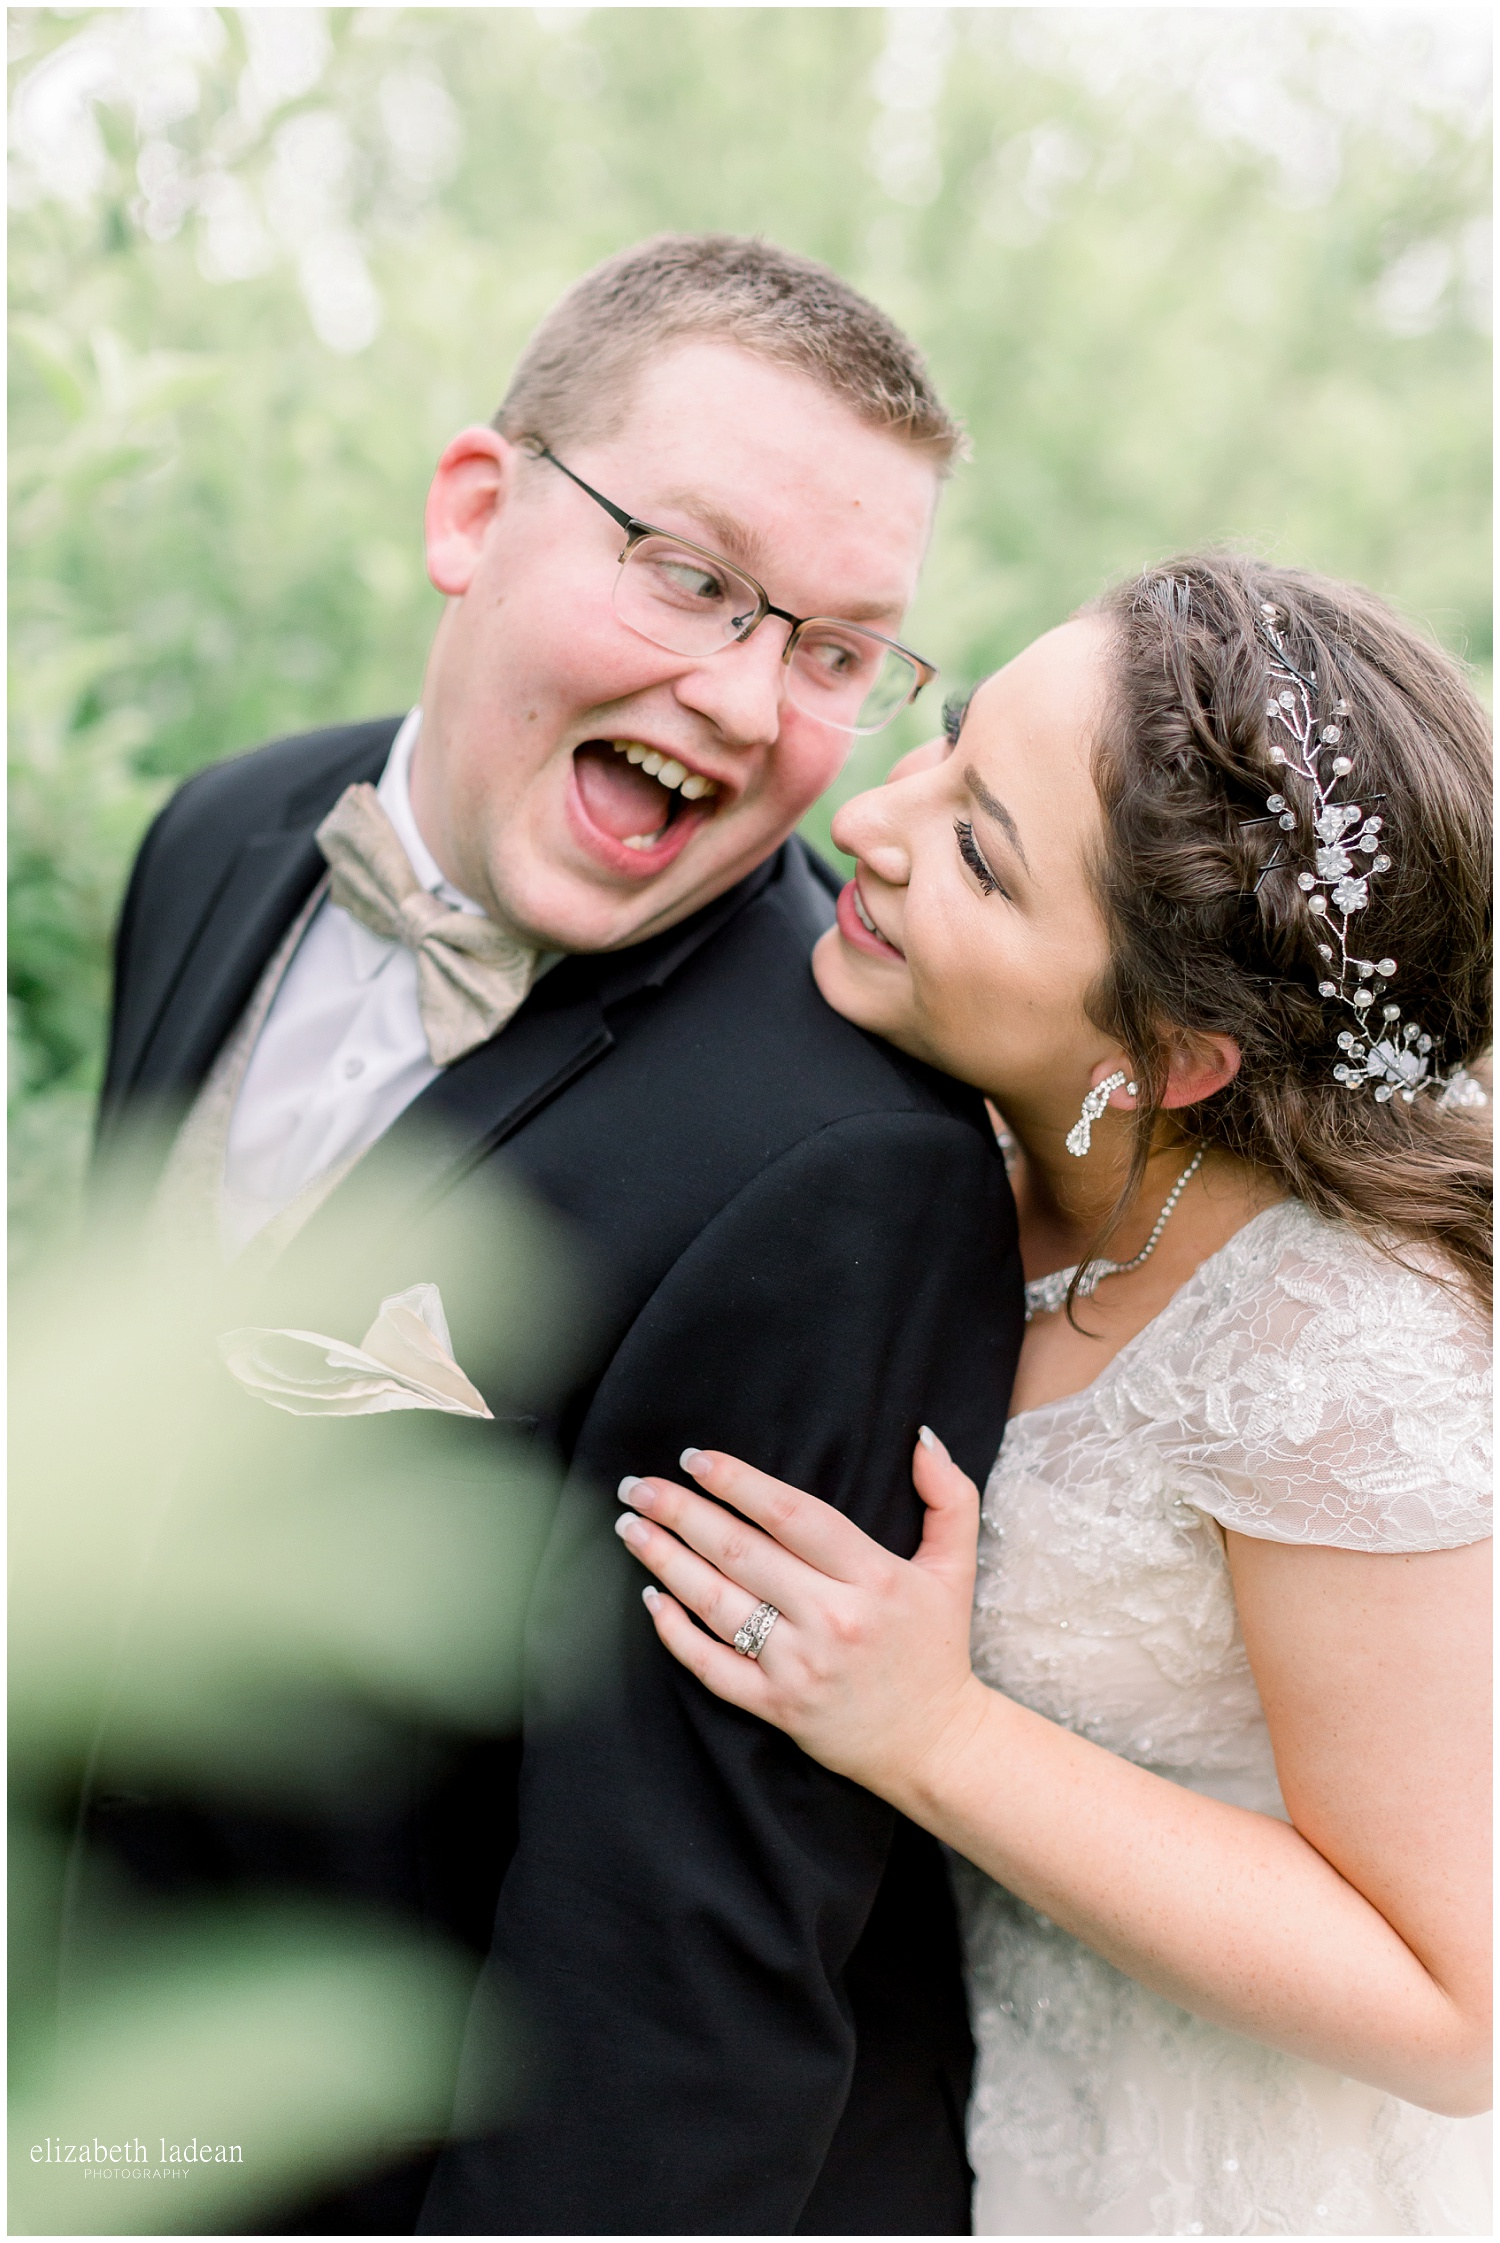 -behind-the-scenes-of-a-wedding-photographer-2018-elizabeth-ladean-photography-photo_3432.jpg